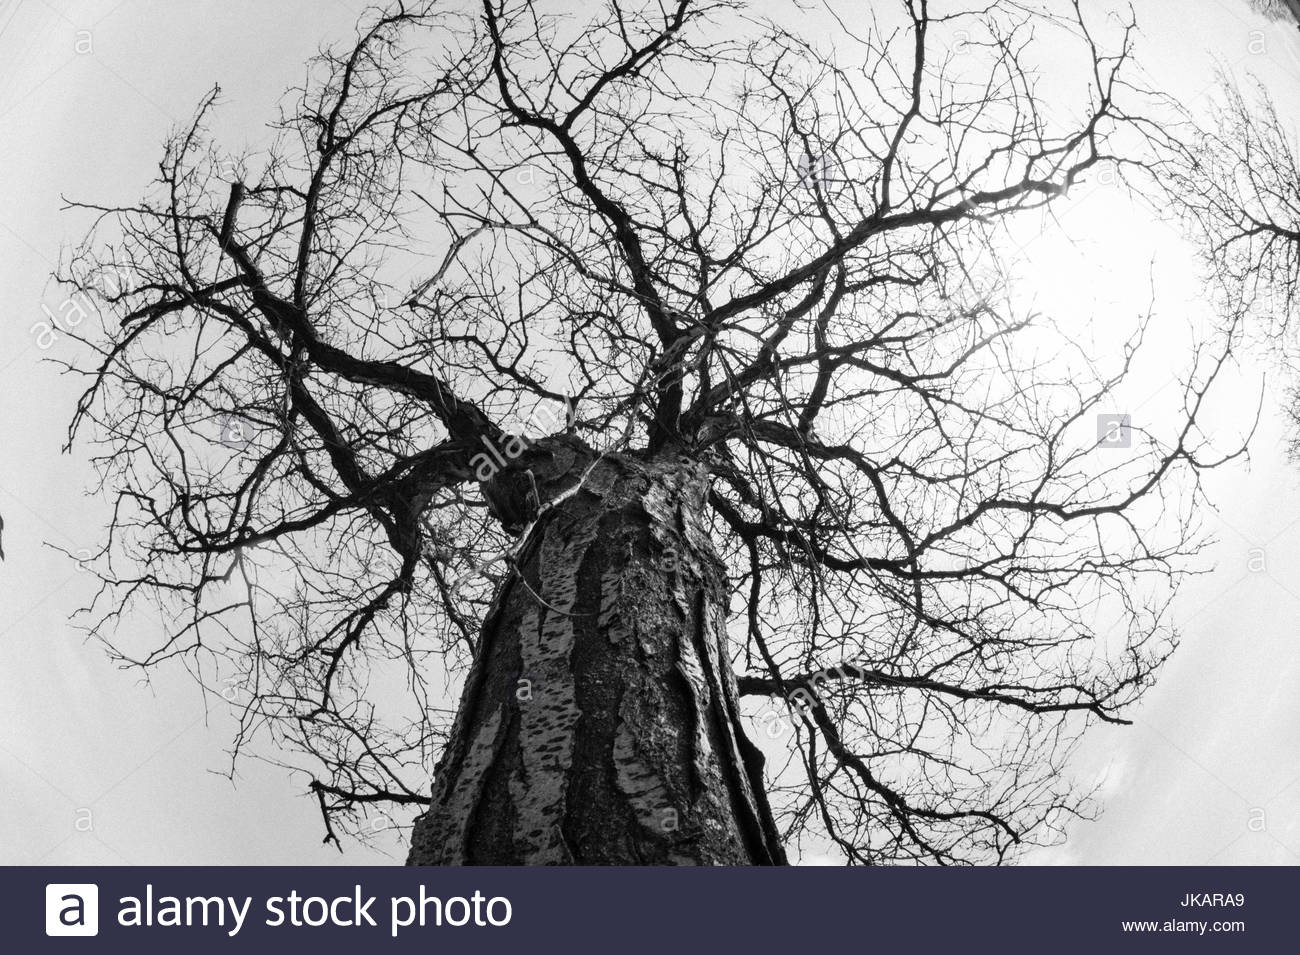 Low angle view of leafless tree in Winter time. The branches form a circular shape due to the wide angle used. - Stock Image